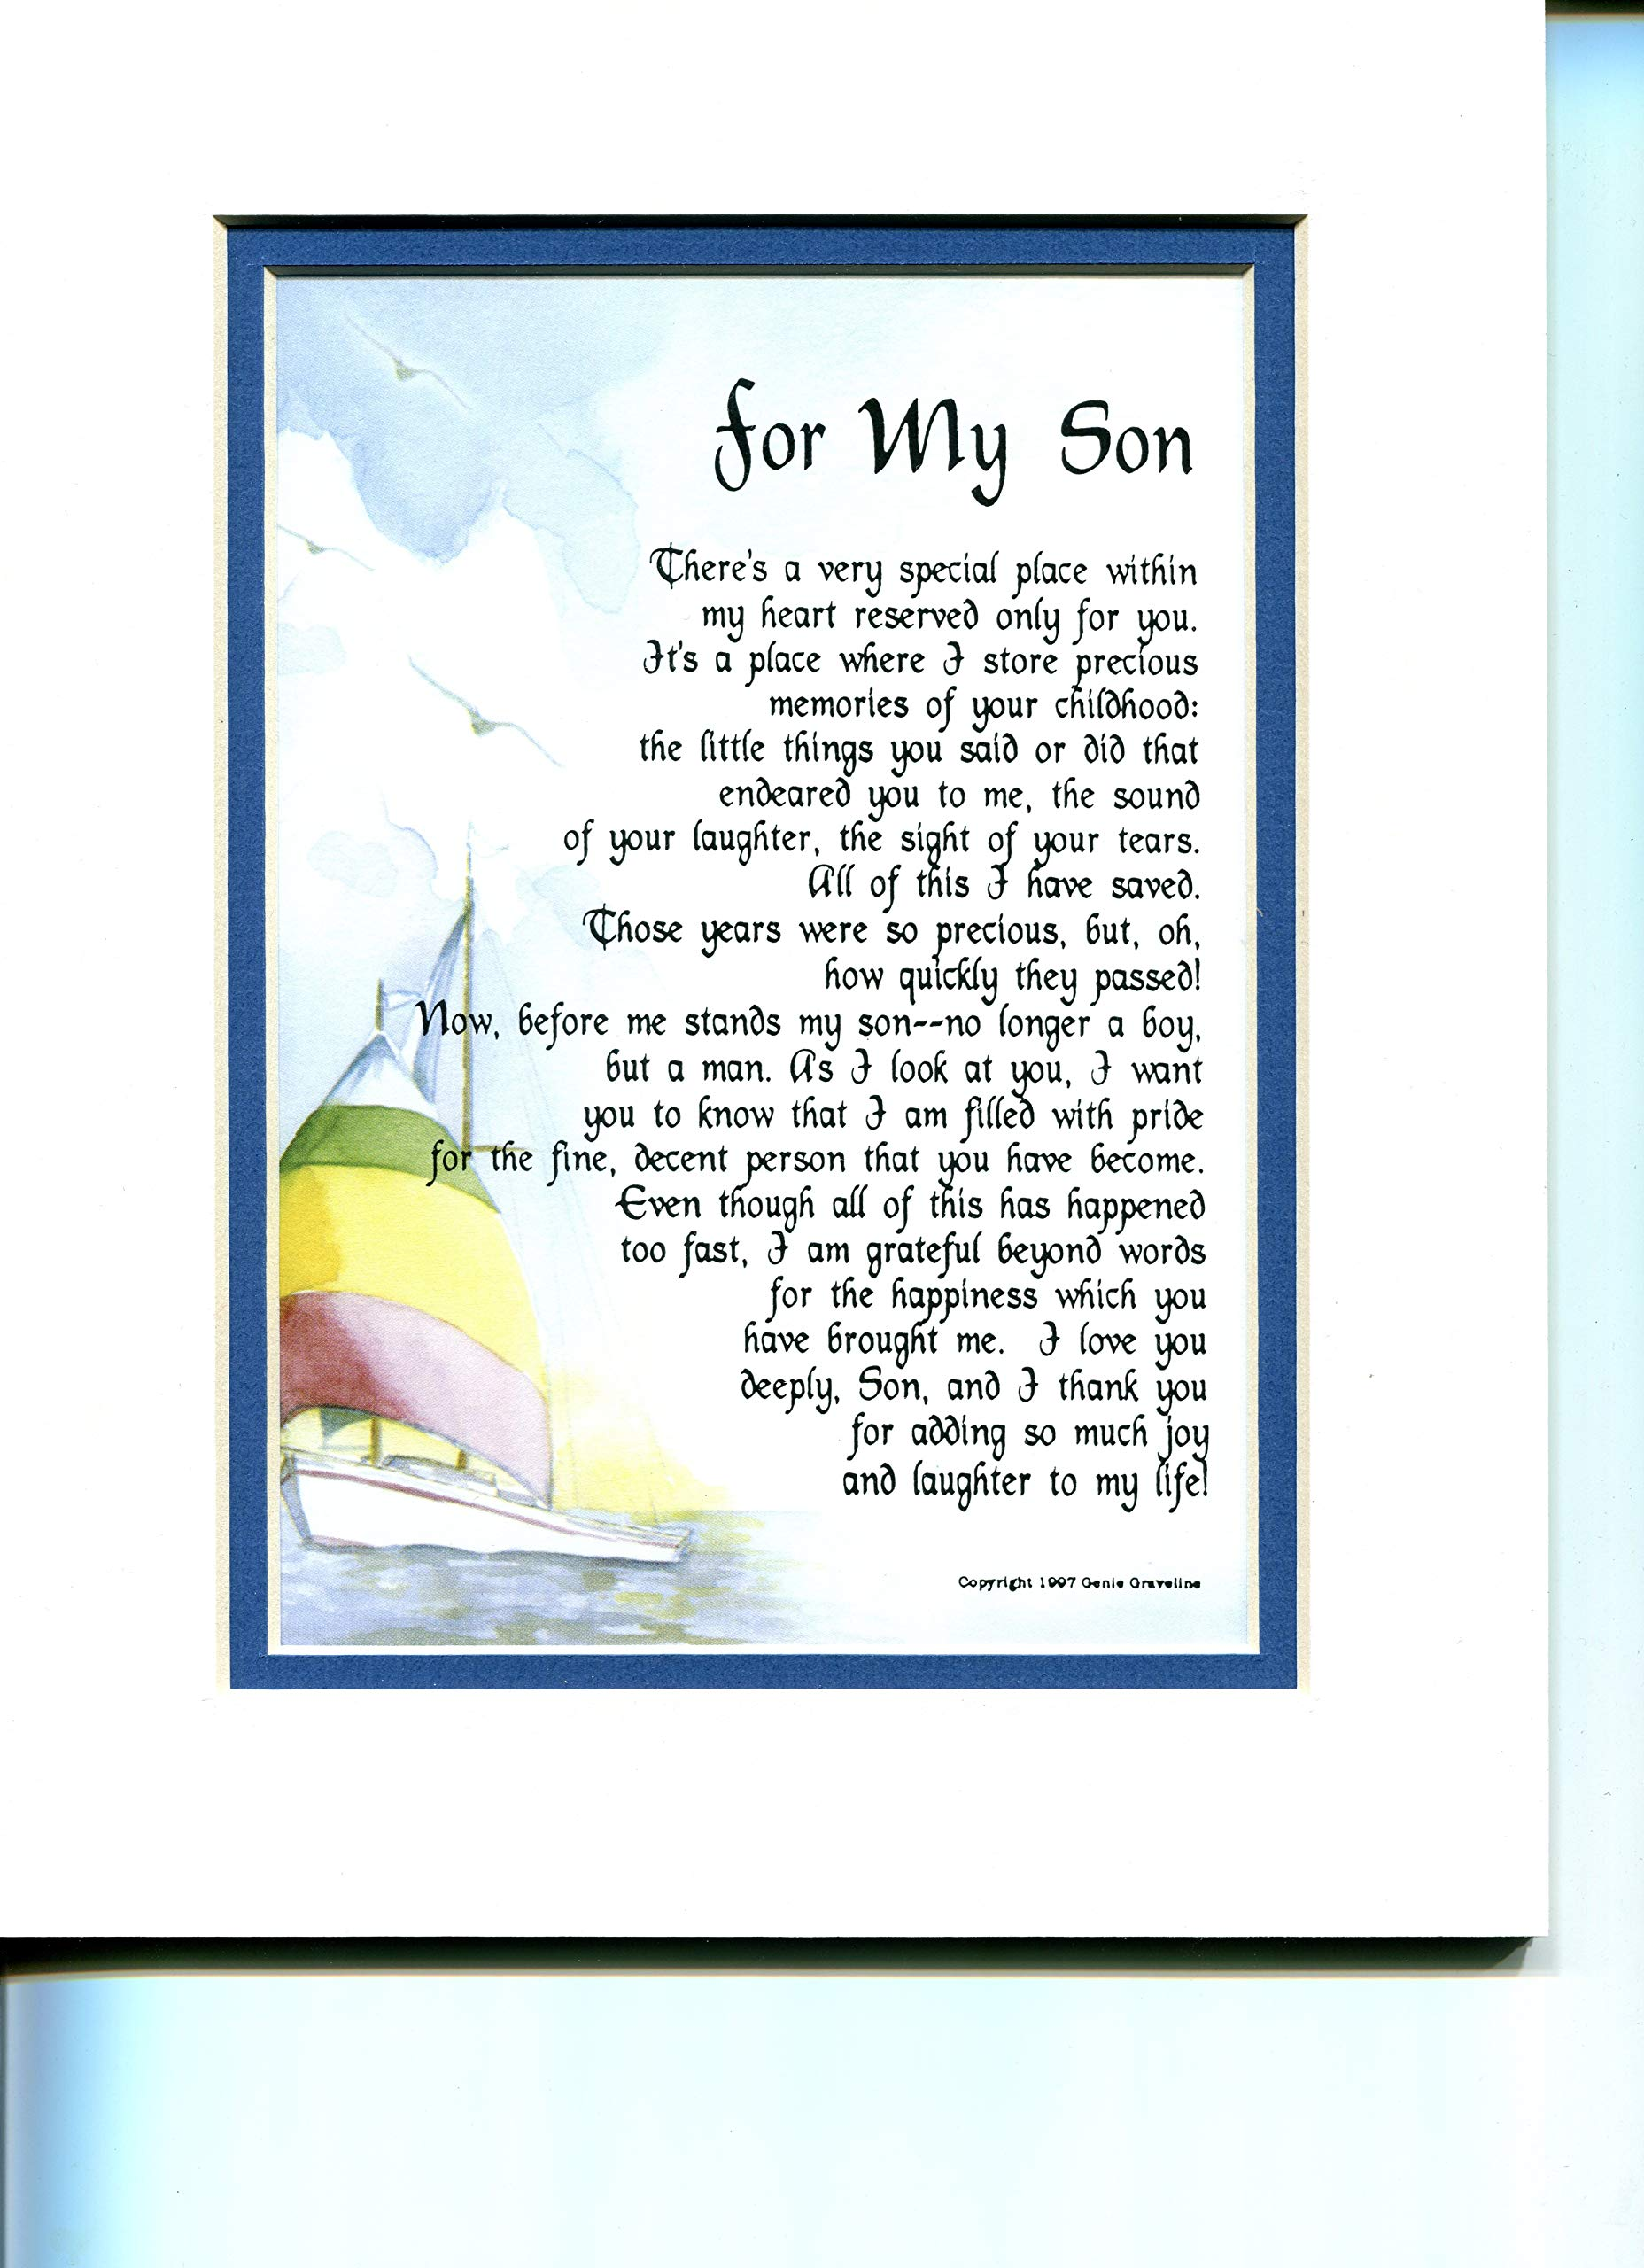 Gift Present Poem For My Son 51 Buy Online In Papua New Guinea At Desertcart Productid 11736417 Life for me ain't been no crystal stair. desertcart